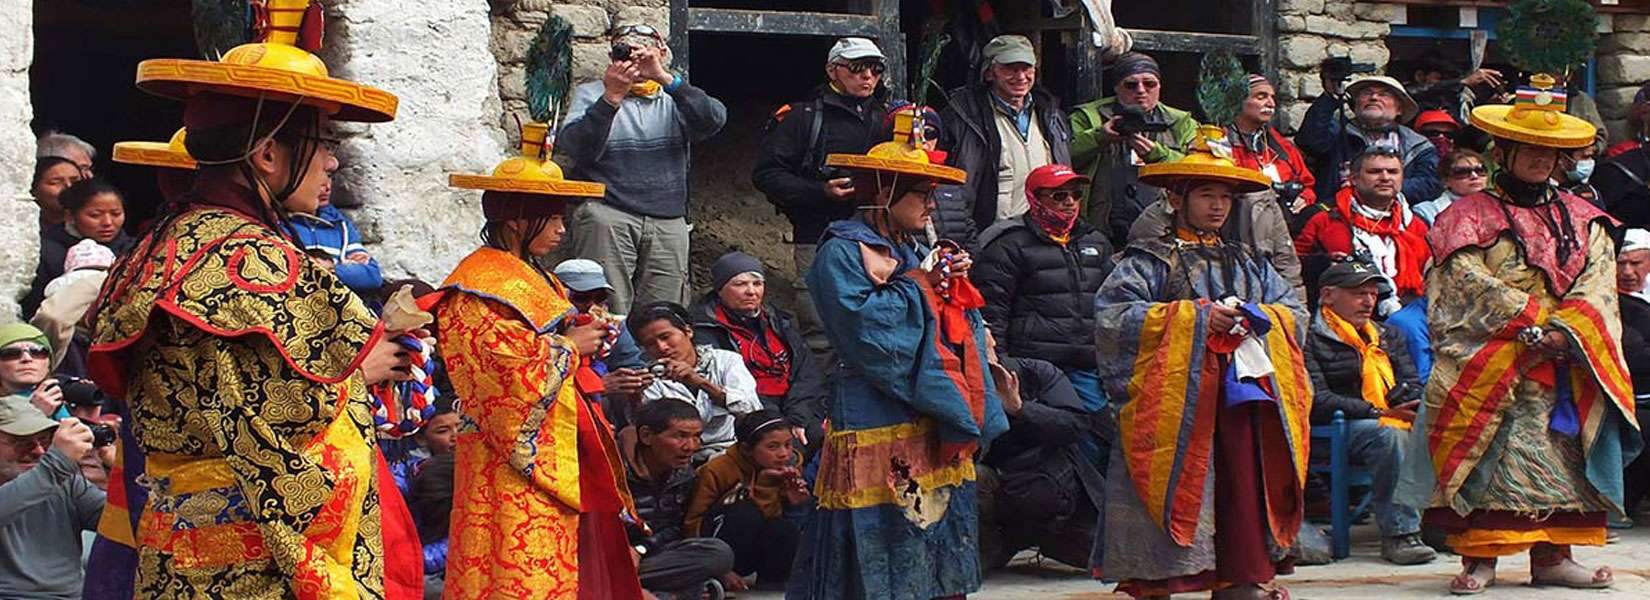 Tiji Festival in Lo Manthang